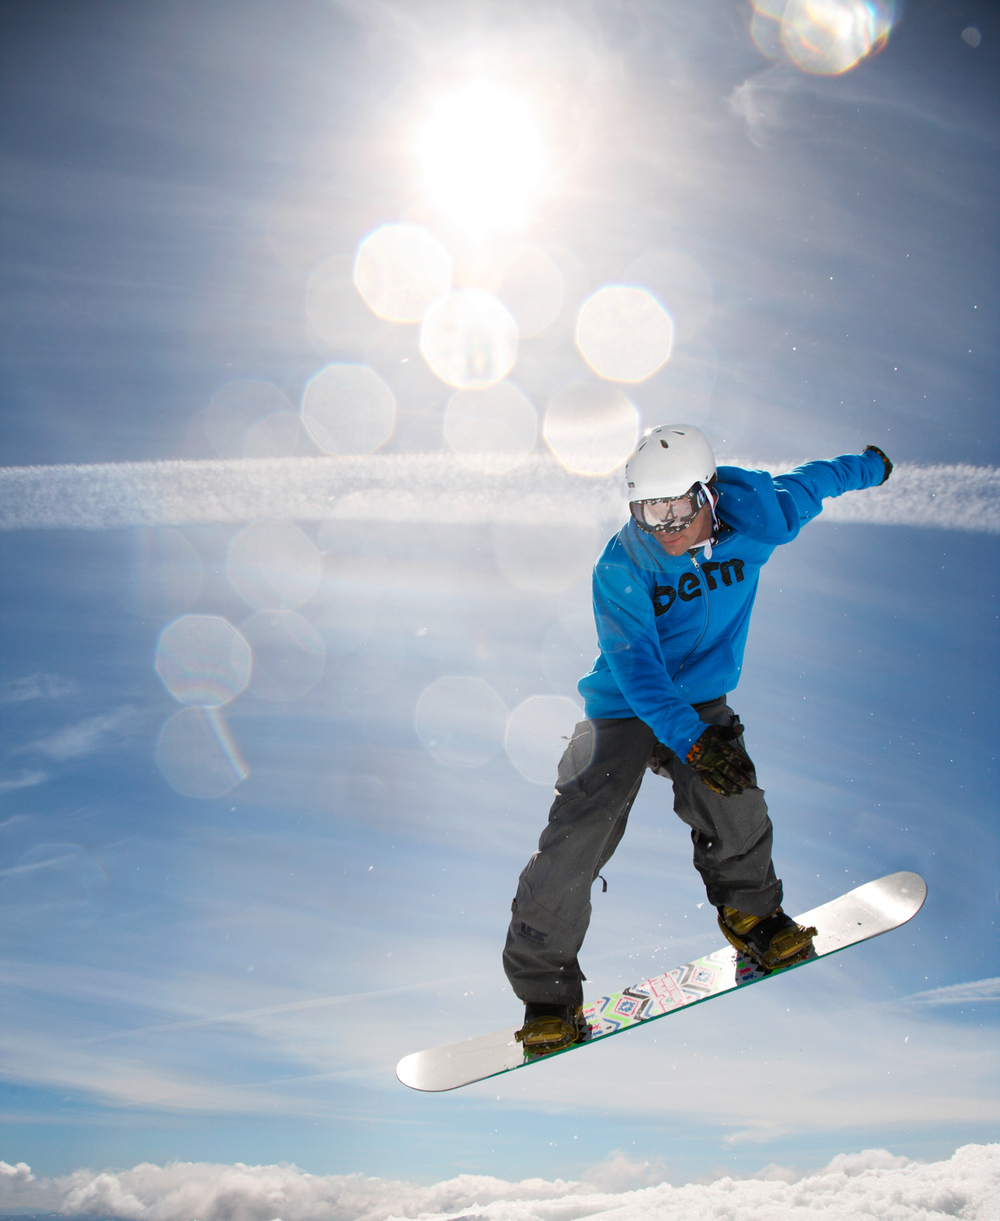 Professional snowboarding catching air. Mount Hood, OR